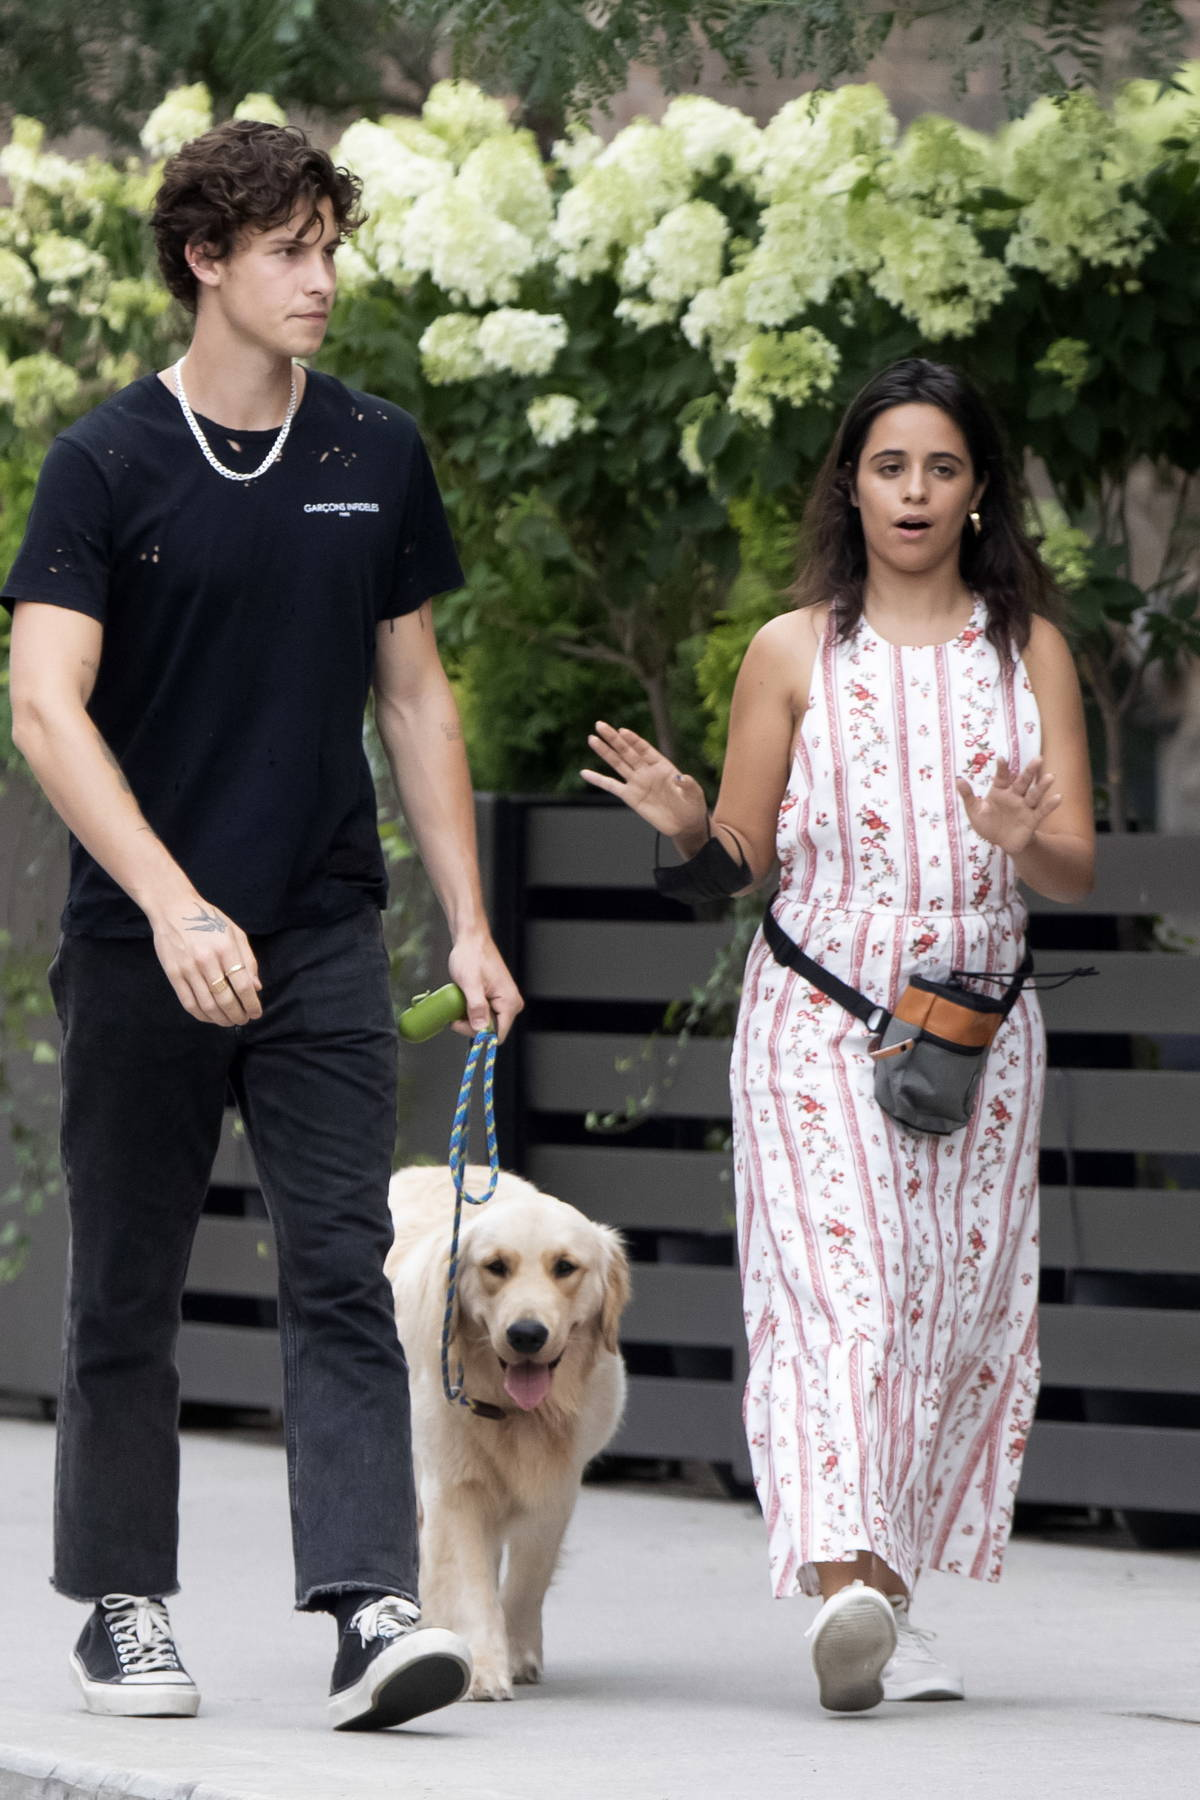 Camila Cabello and Shawn Mendes step out for a leisurely stroll with their dog in Shawn's hometown of Toronto, Canada